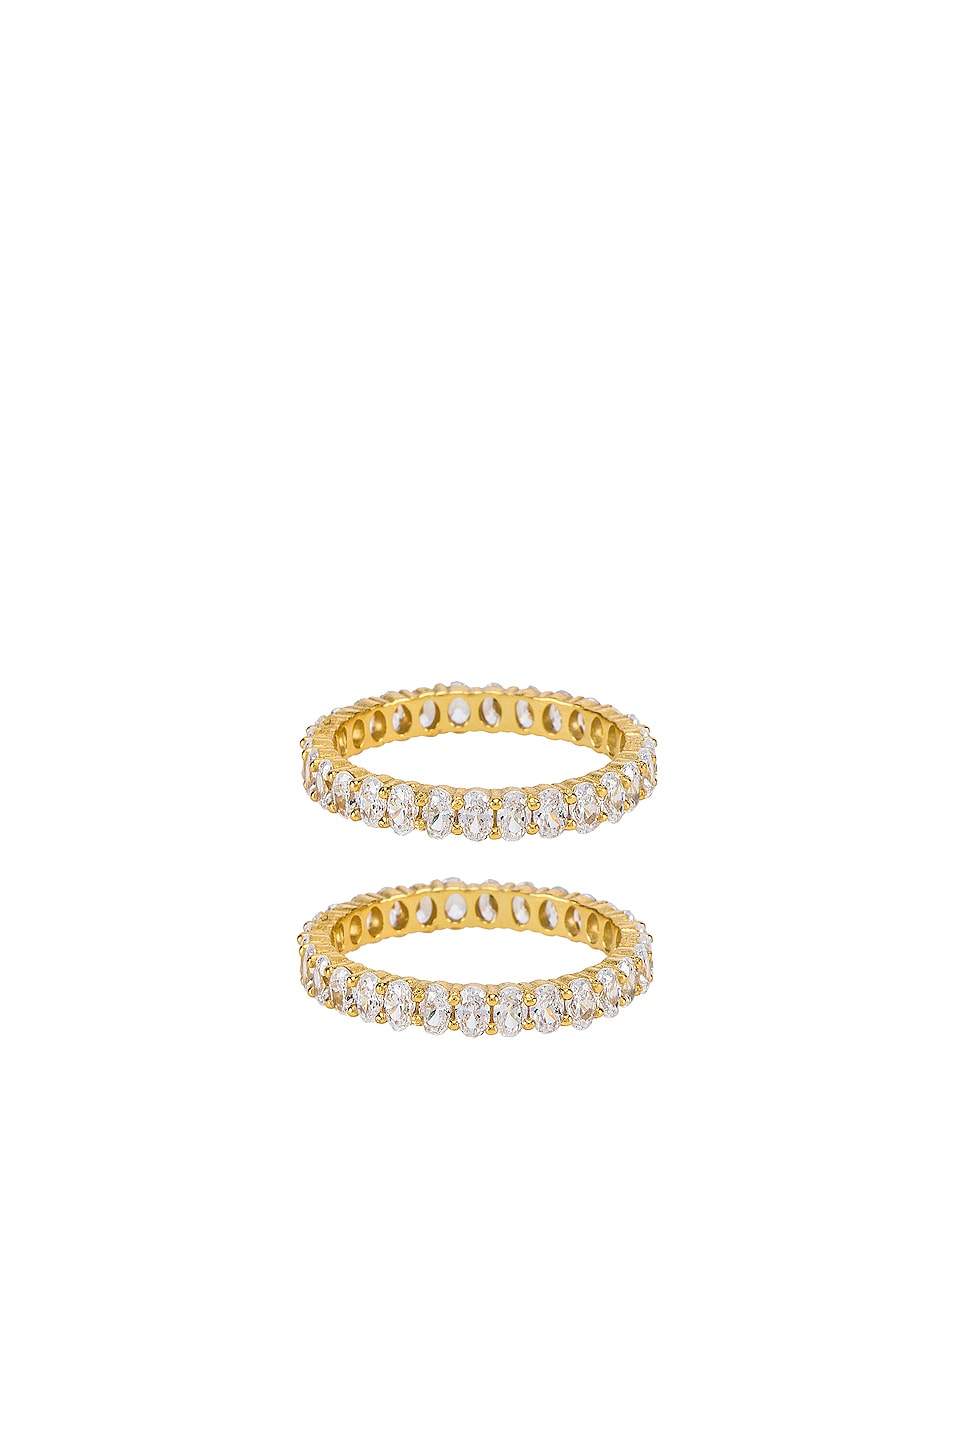 SHASHI Marry Me Ring Set in Gold